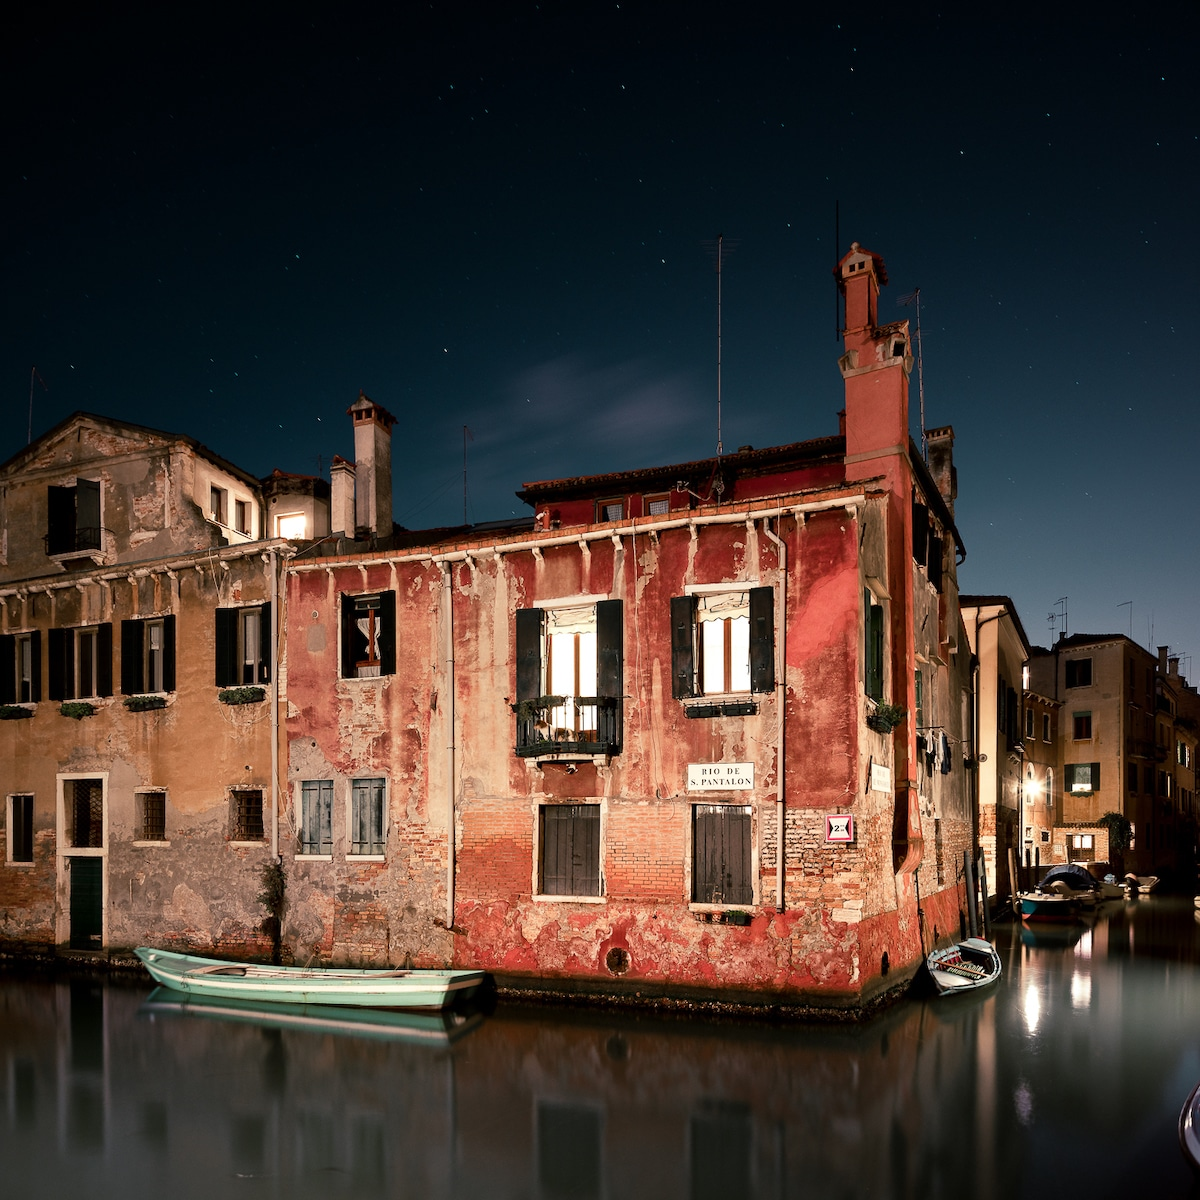 Night Photography in Venice